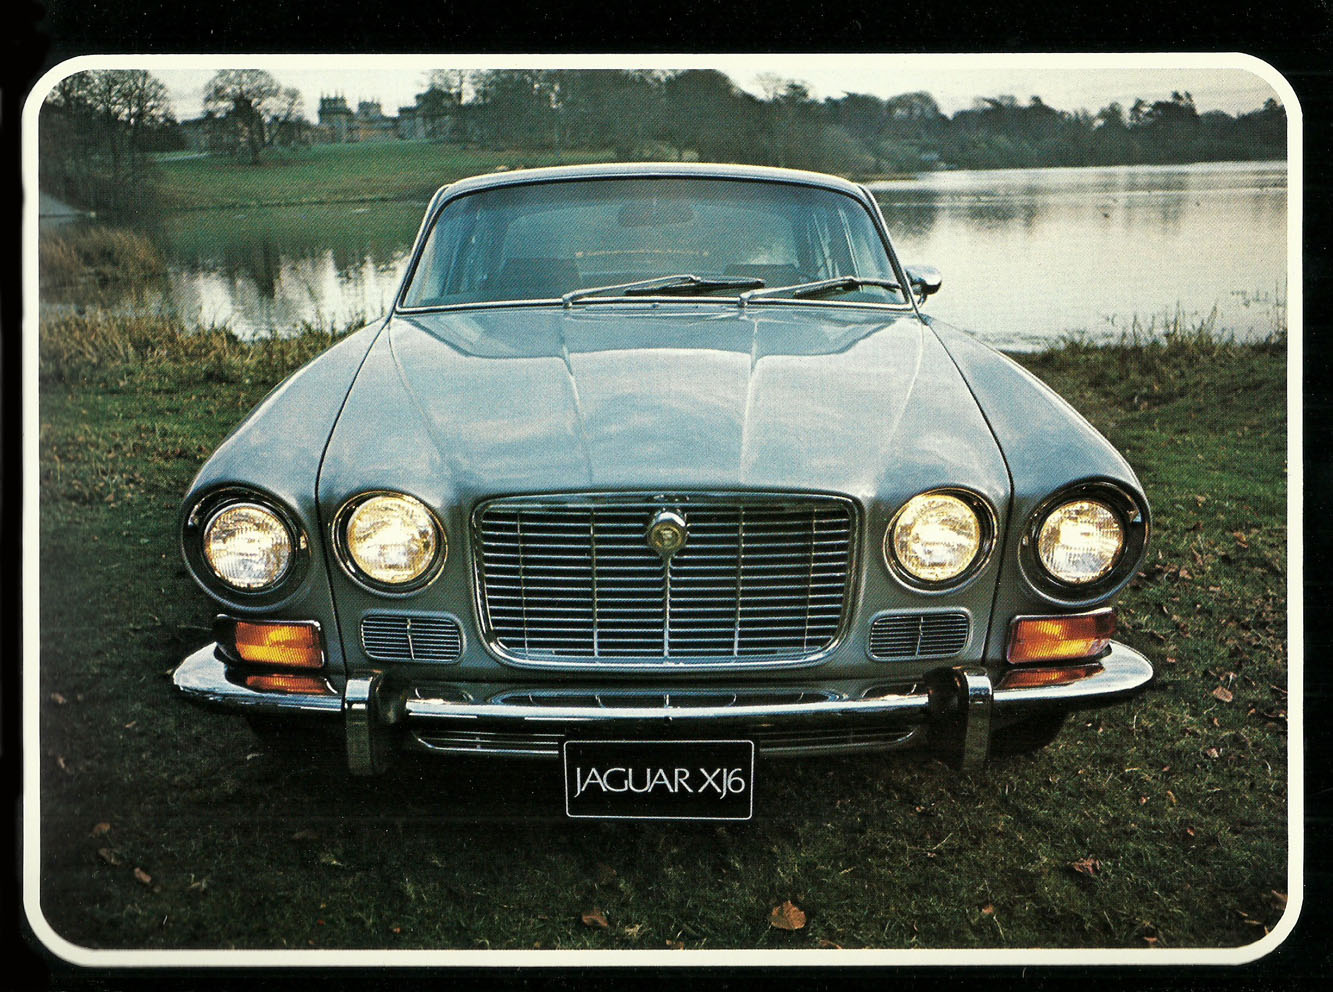 tunnelram.net_Jaguar xj series (5).jpg